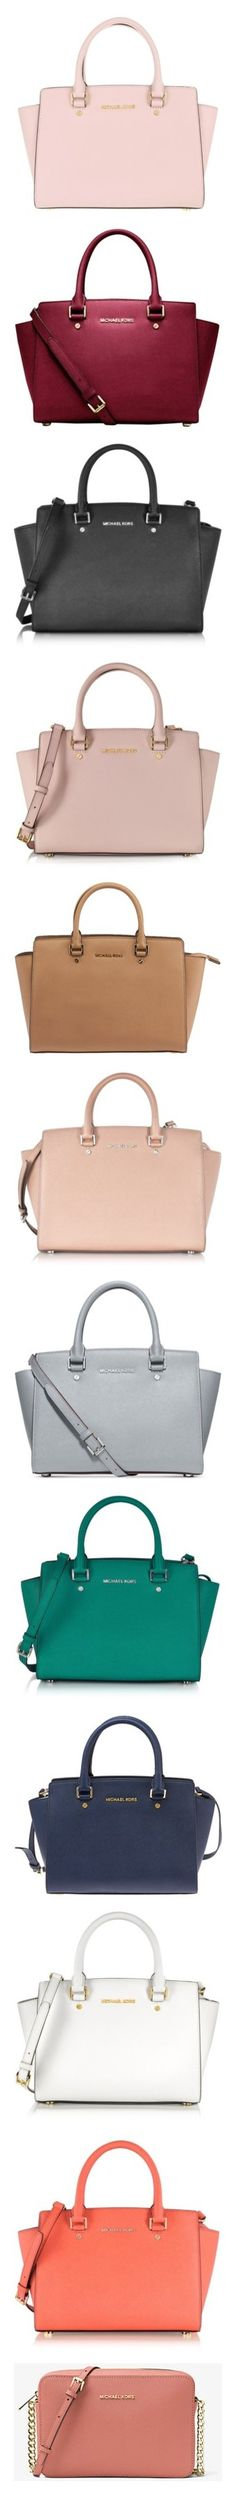 """""""Crossbody"""" by poxleitner15 ❤ liked on Polyvore featuring bags, handbags, michael kors satchel, pink satchel purse, michael kors crossbody, satchel purses, michael kors purses, cherry, red leather satchel and leather handbags"""